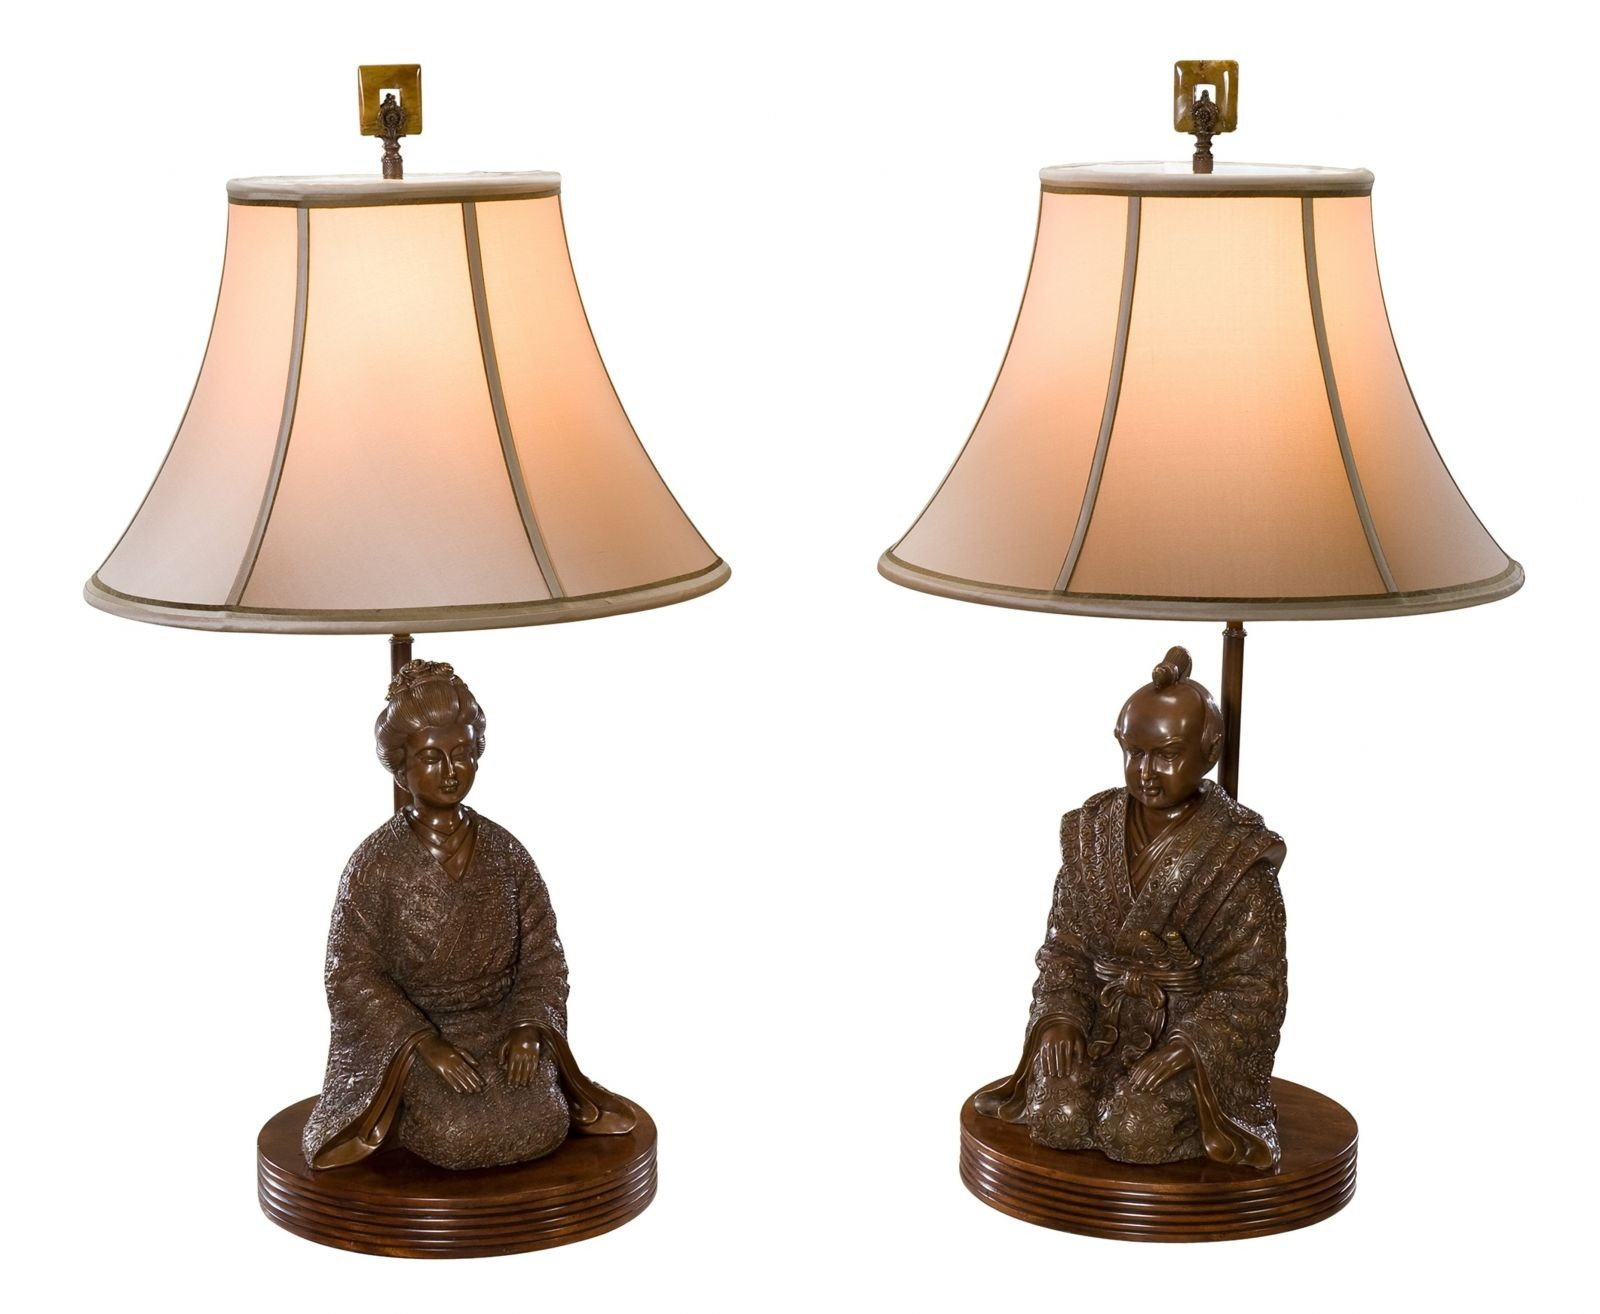 A set of two brass table lamps with traditional Japanese couple